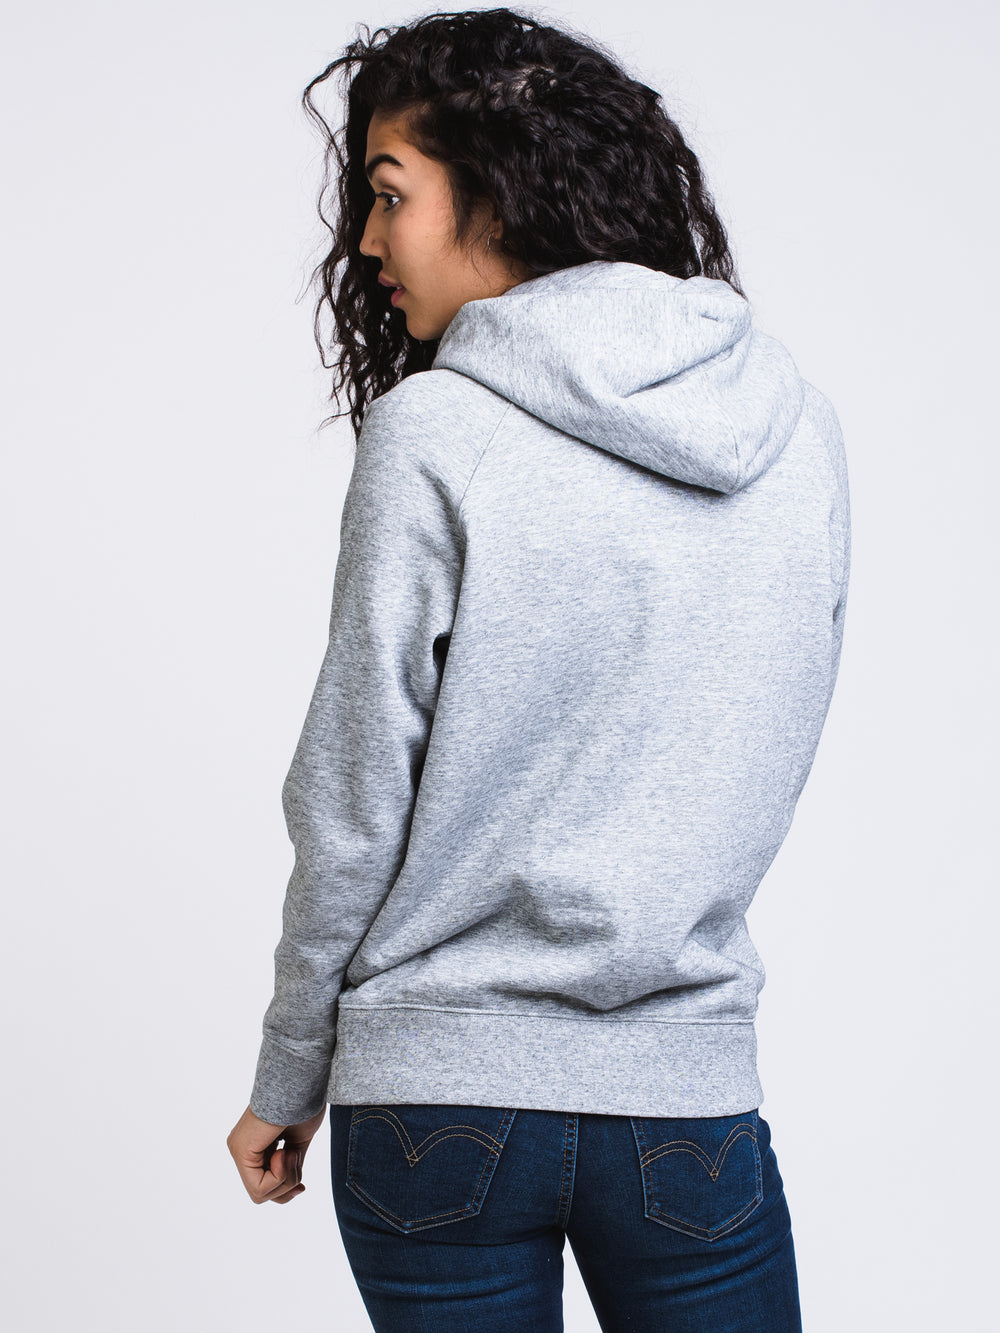 WOMENS GRAPHIC SPORT Pullover HOODIE